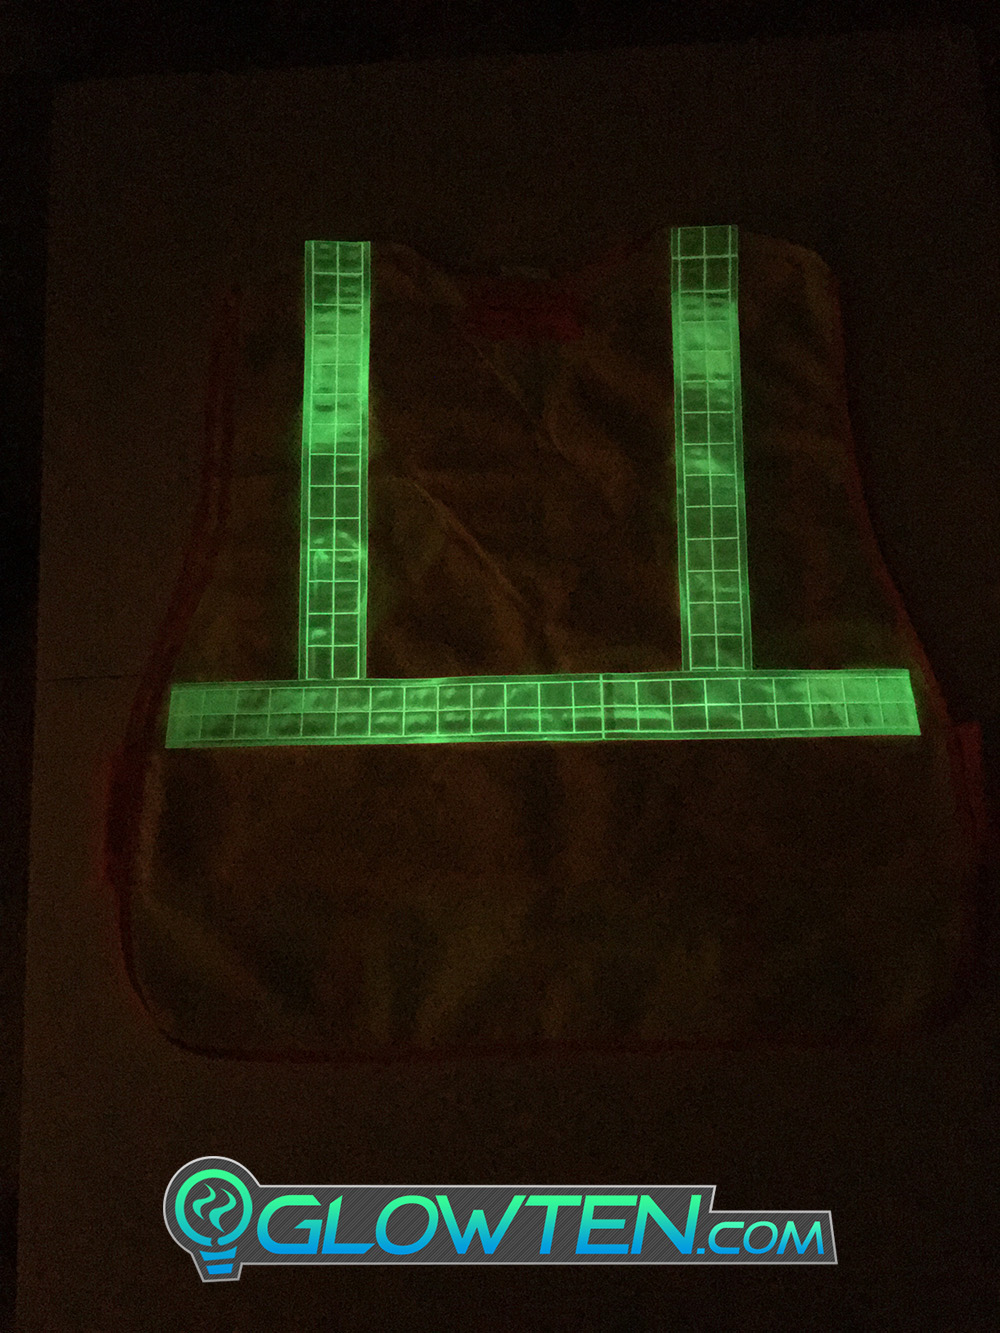 GLOWTEN.com - How Do You Use Glow In The Dark Tape LUMINOUS Band Glow in the Dark See Better At Night Safety Hazard Cycling Reflective High-Visibility Band Biking at Night Bicycle picture photo cap preview pic image search 4